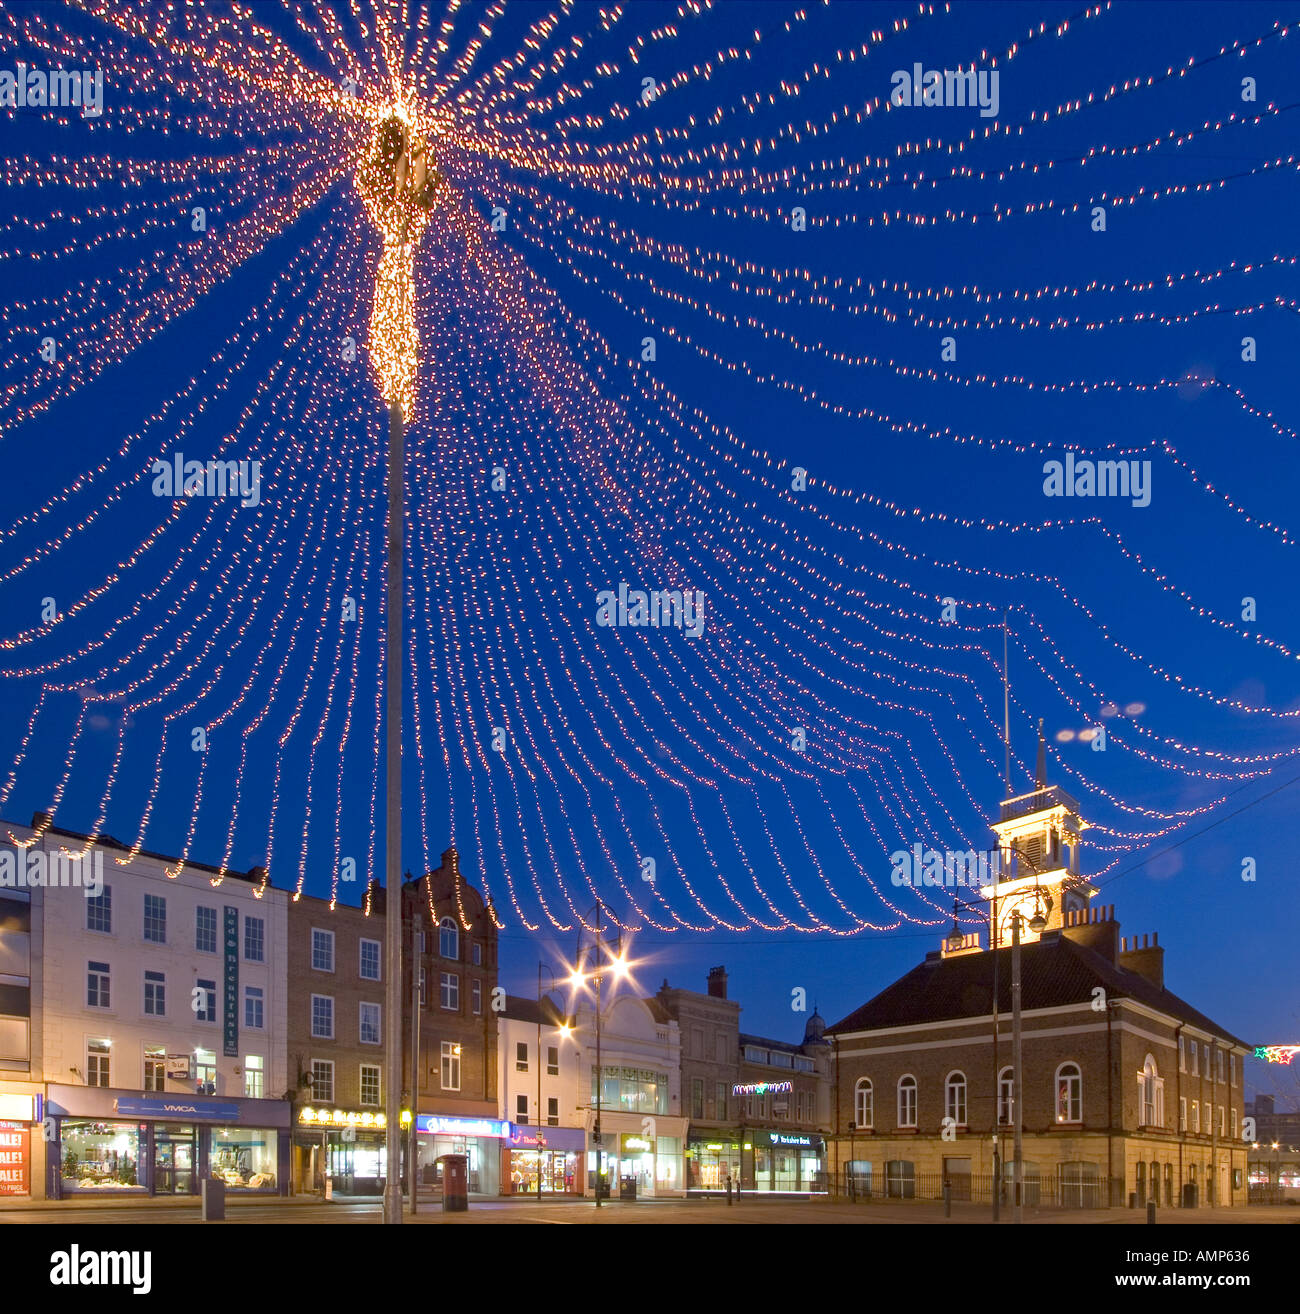 Christmas Lights On Cleveland Public Square: Christmas Lights At Stockton On Tees Cleveland England